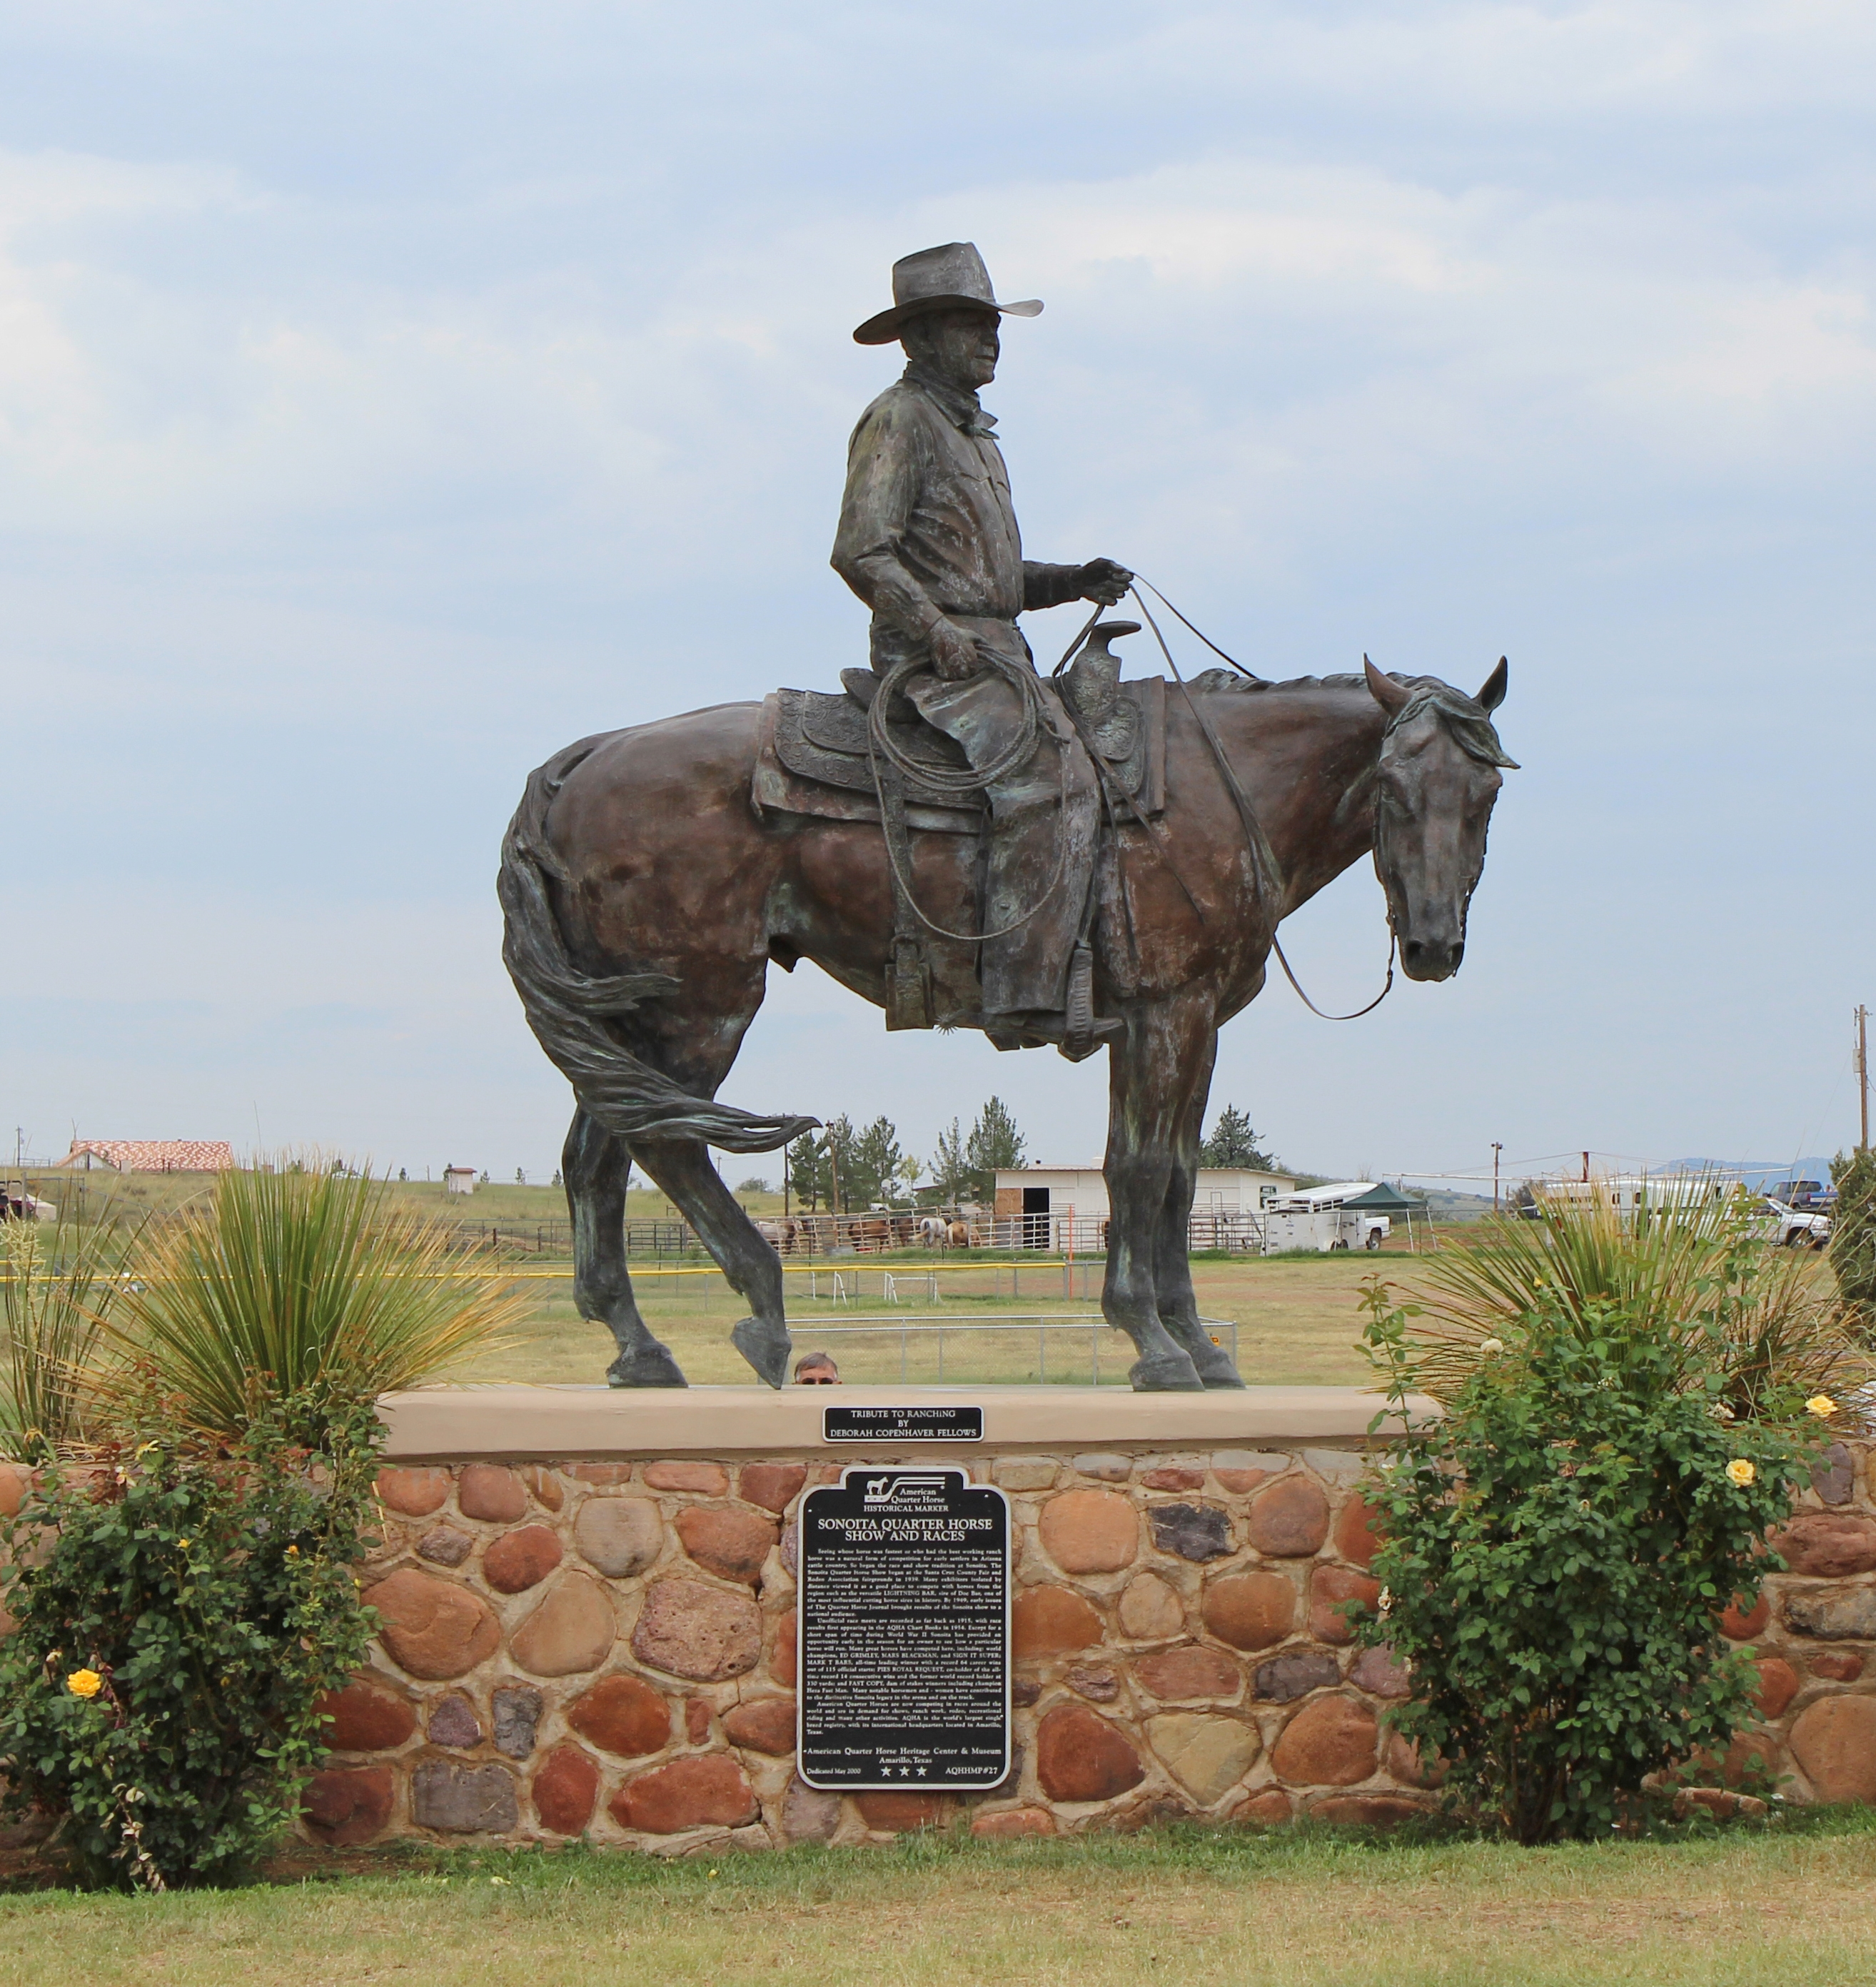 Sonoita Quarter Horse Show and Races Marker